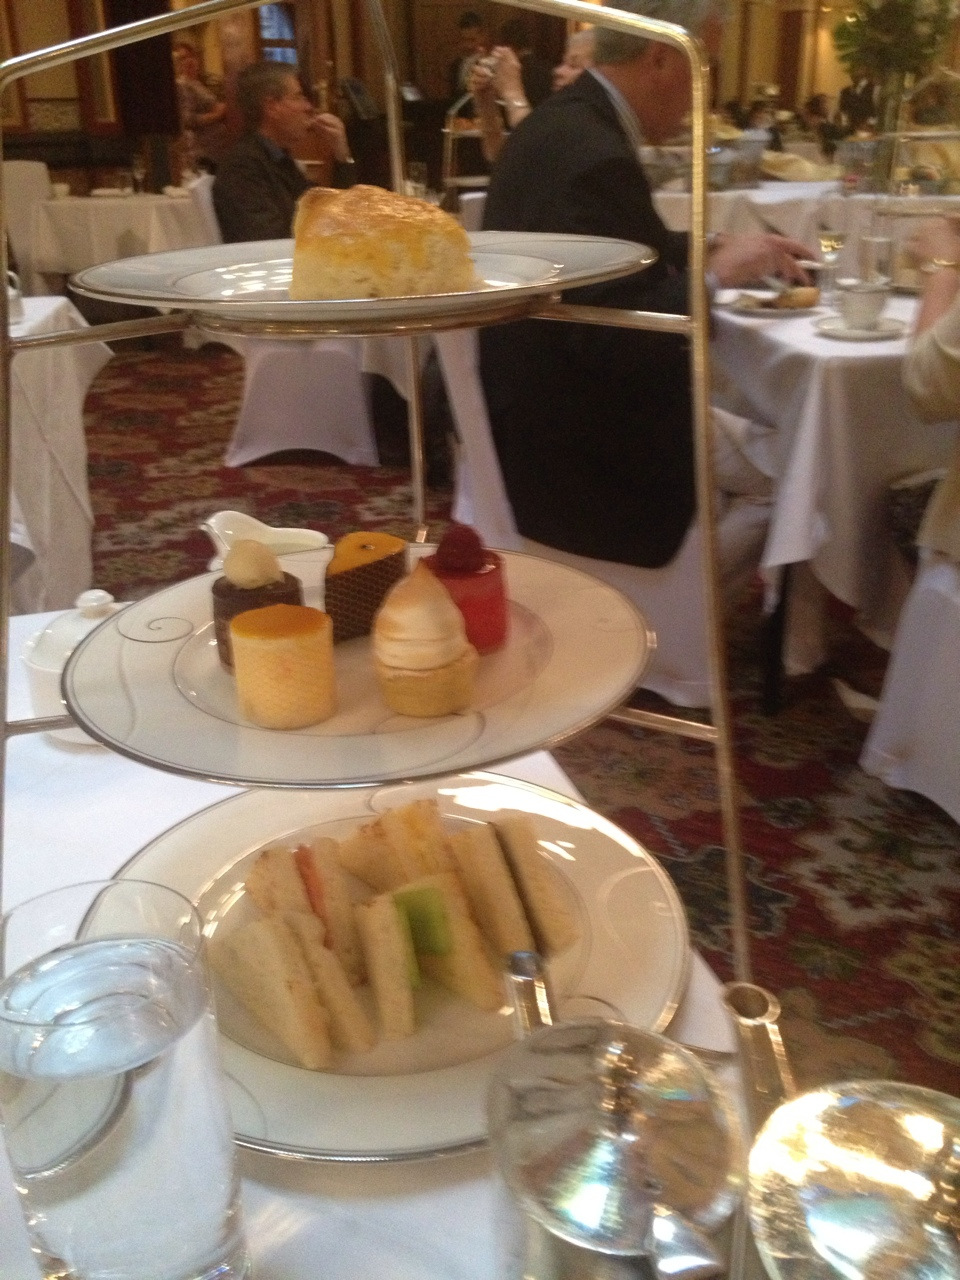 The Windsor high tea